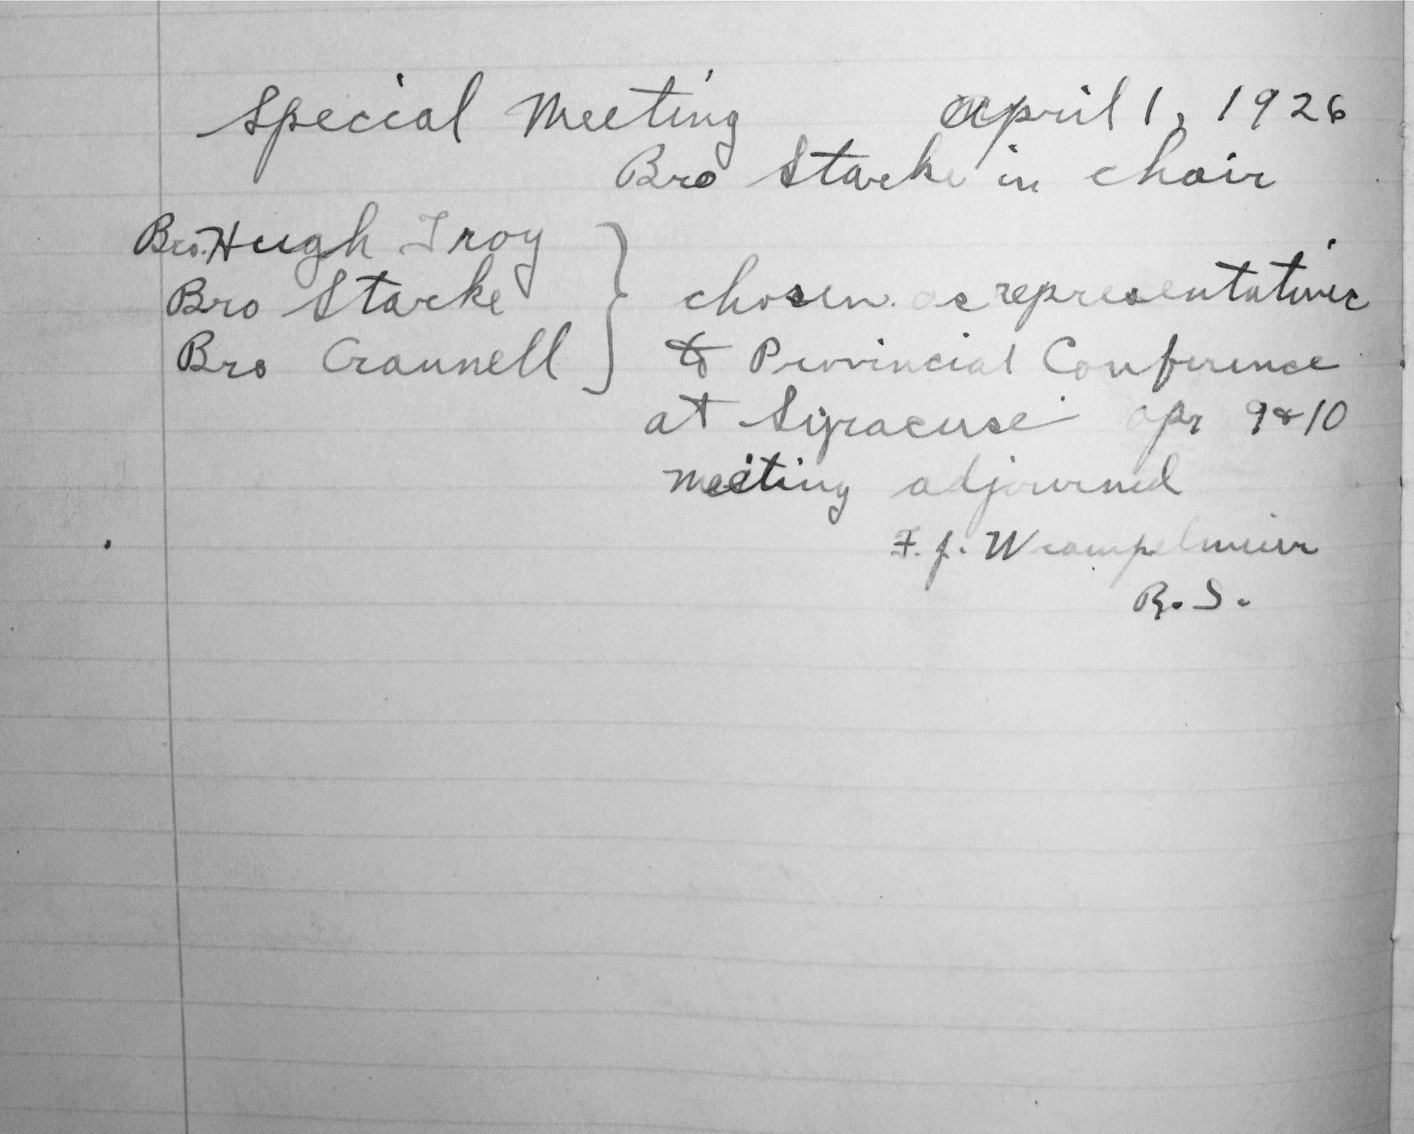 Minutes of Special Meeting, April 1, 1926